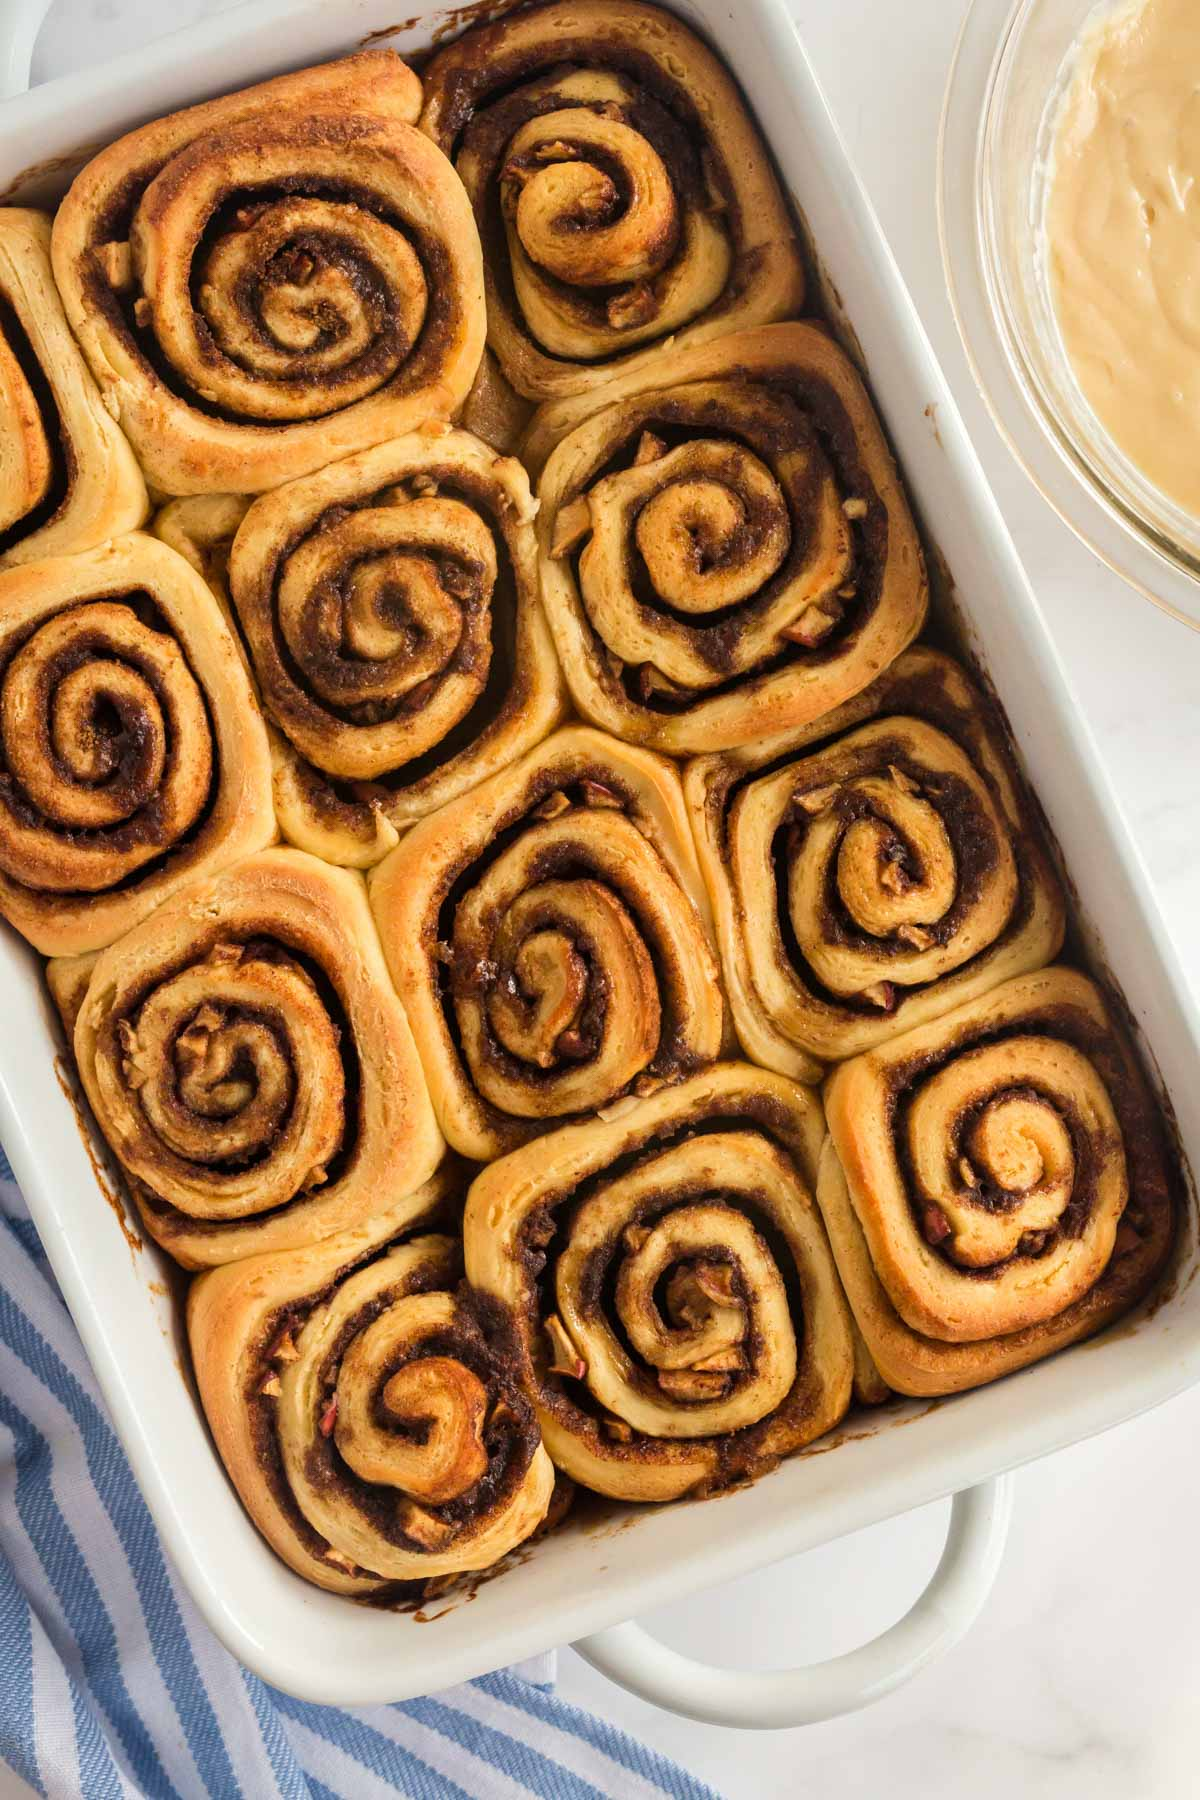 baked cinnamon rolls fresh out of the oven